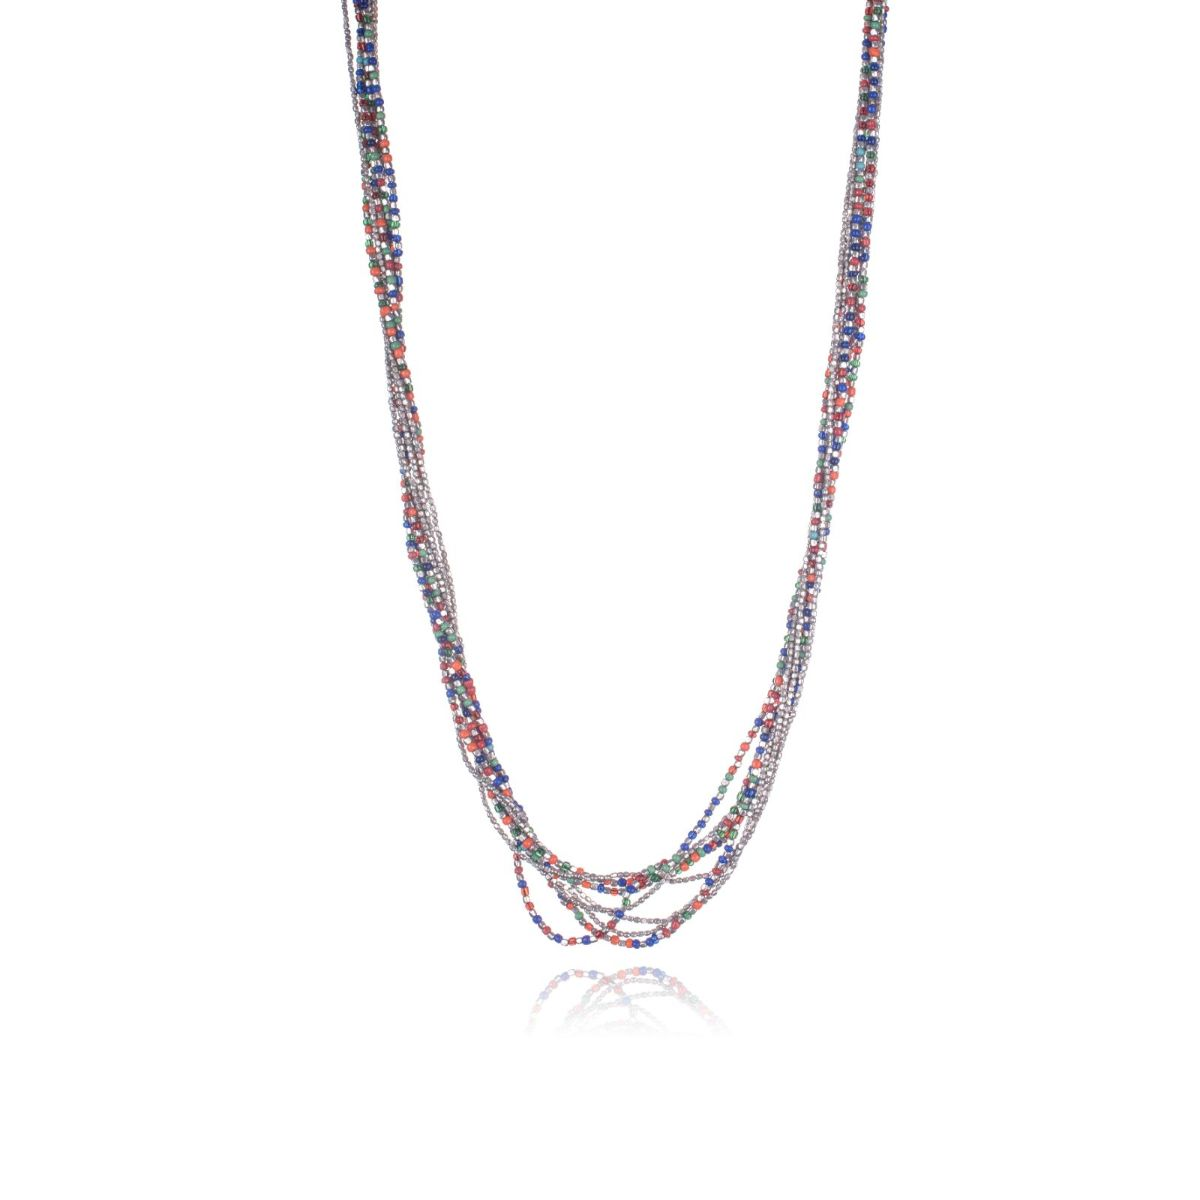 Pompeii long necklace of multi-strand silver and multicolored beads